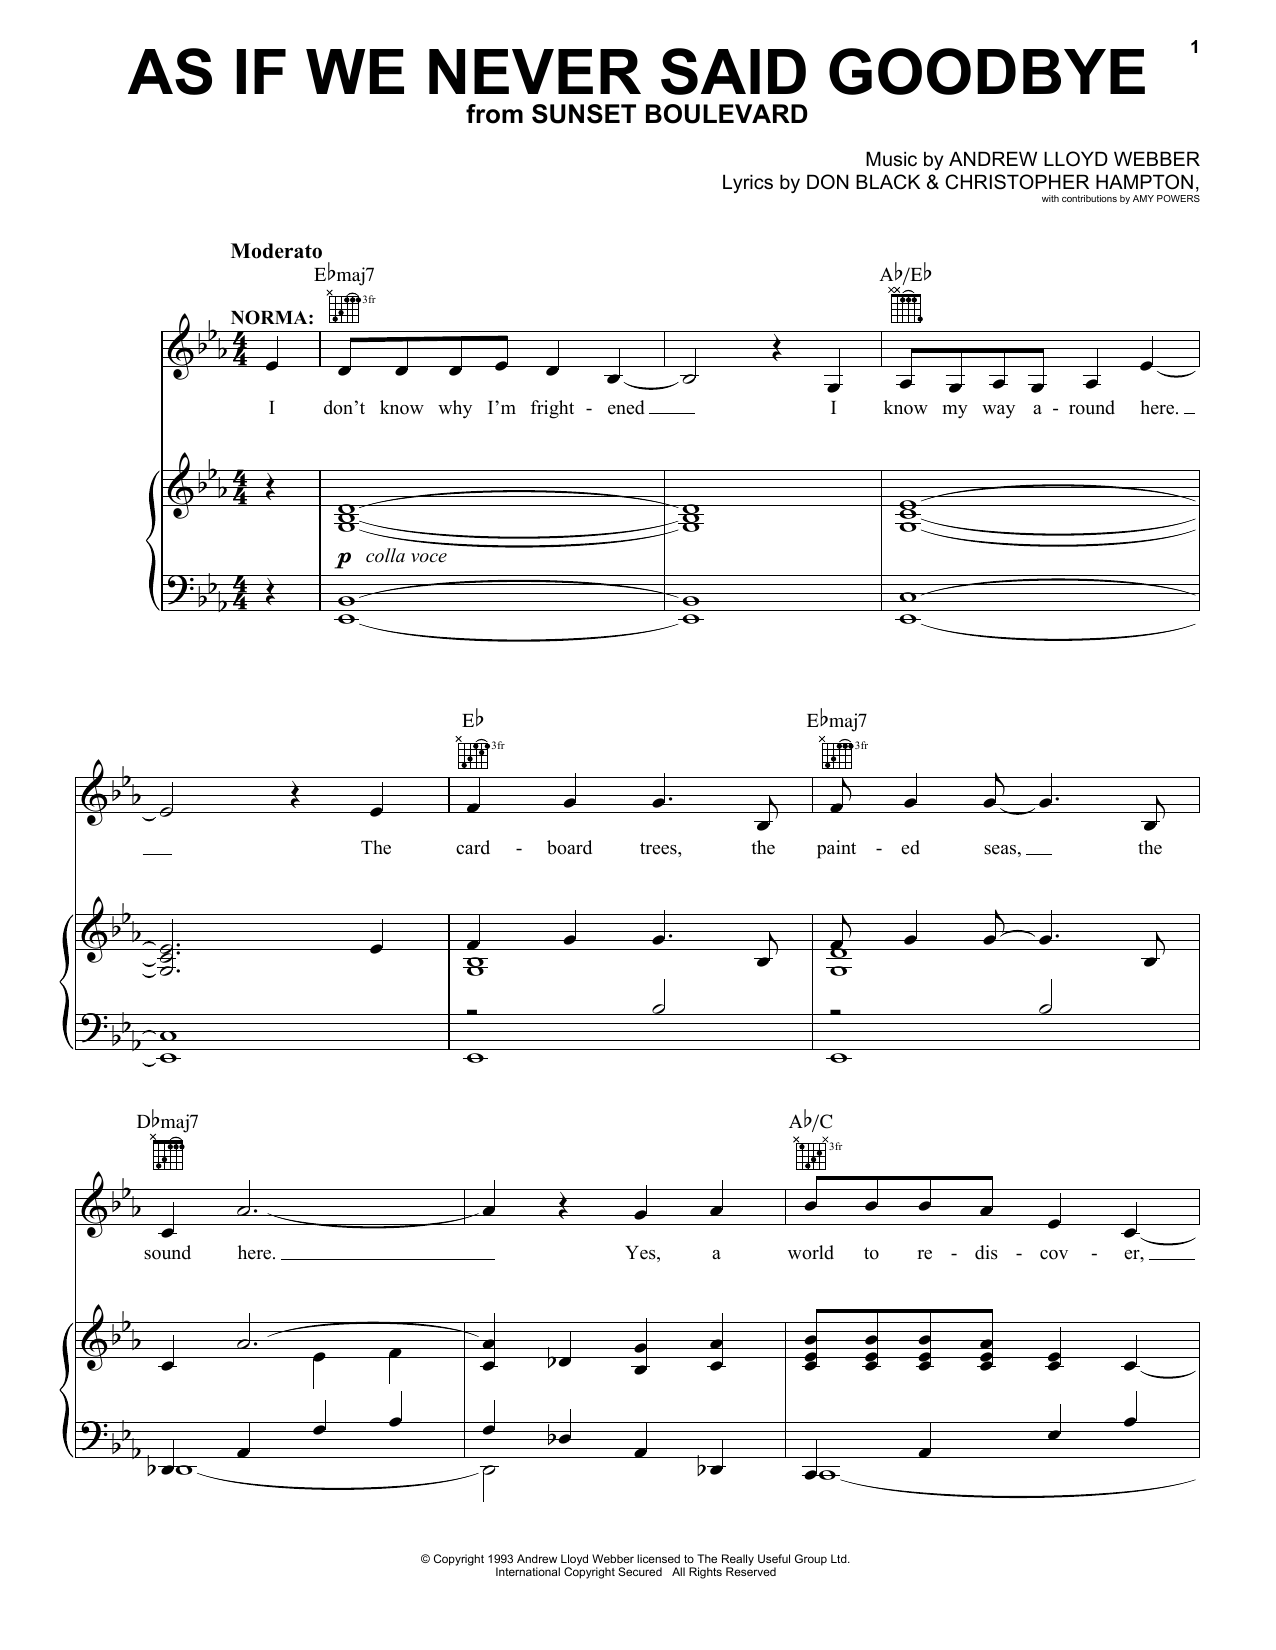 As If We Never Said Goodbye sheet music